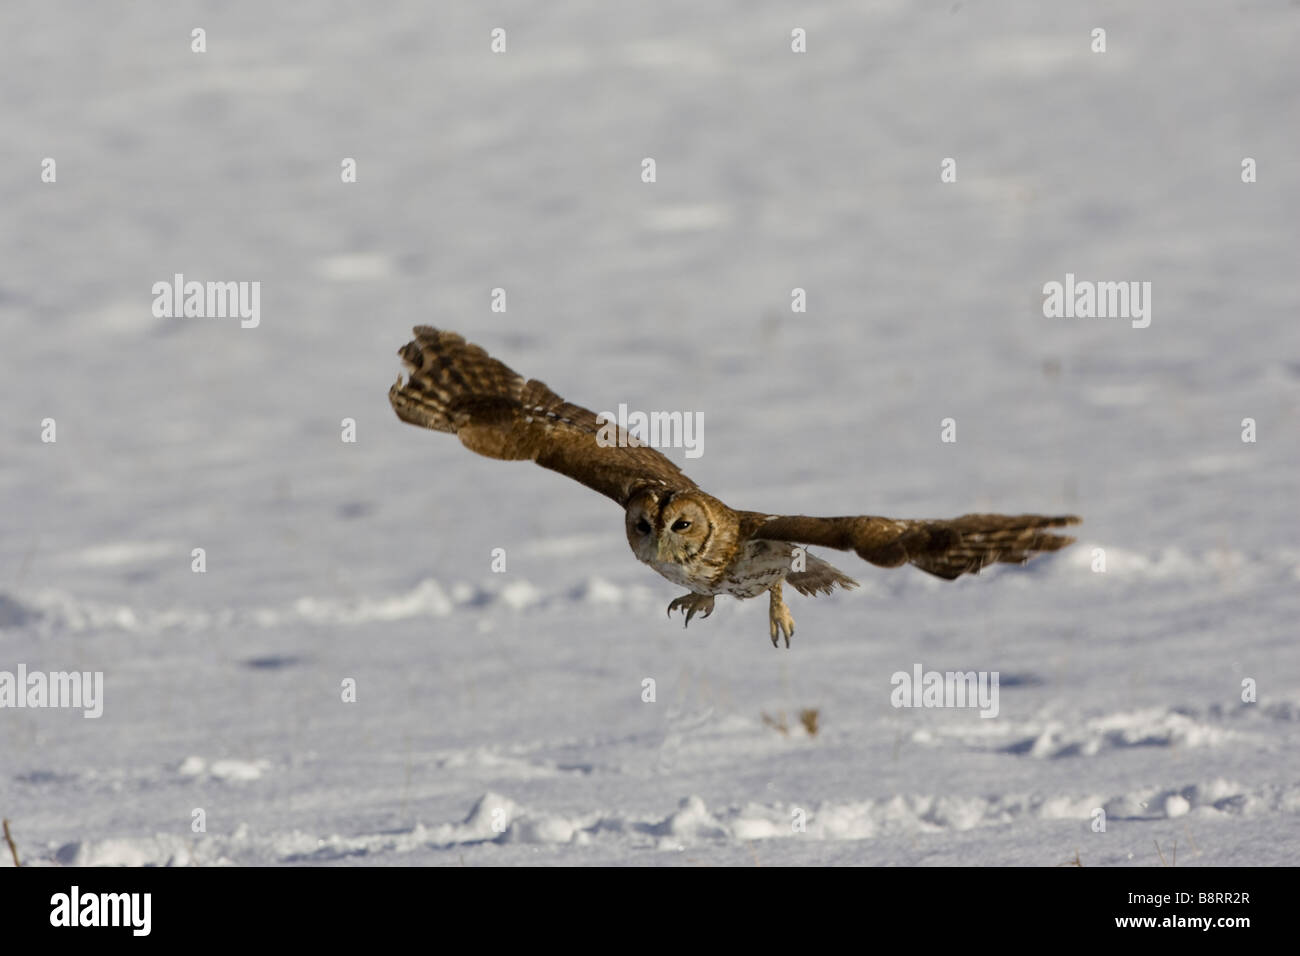 Tawny Owl flying accros a snow covered field - Stock Image